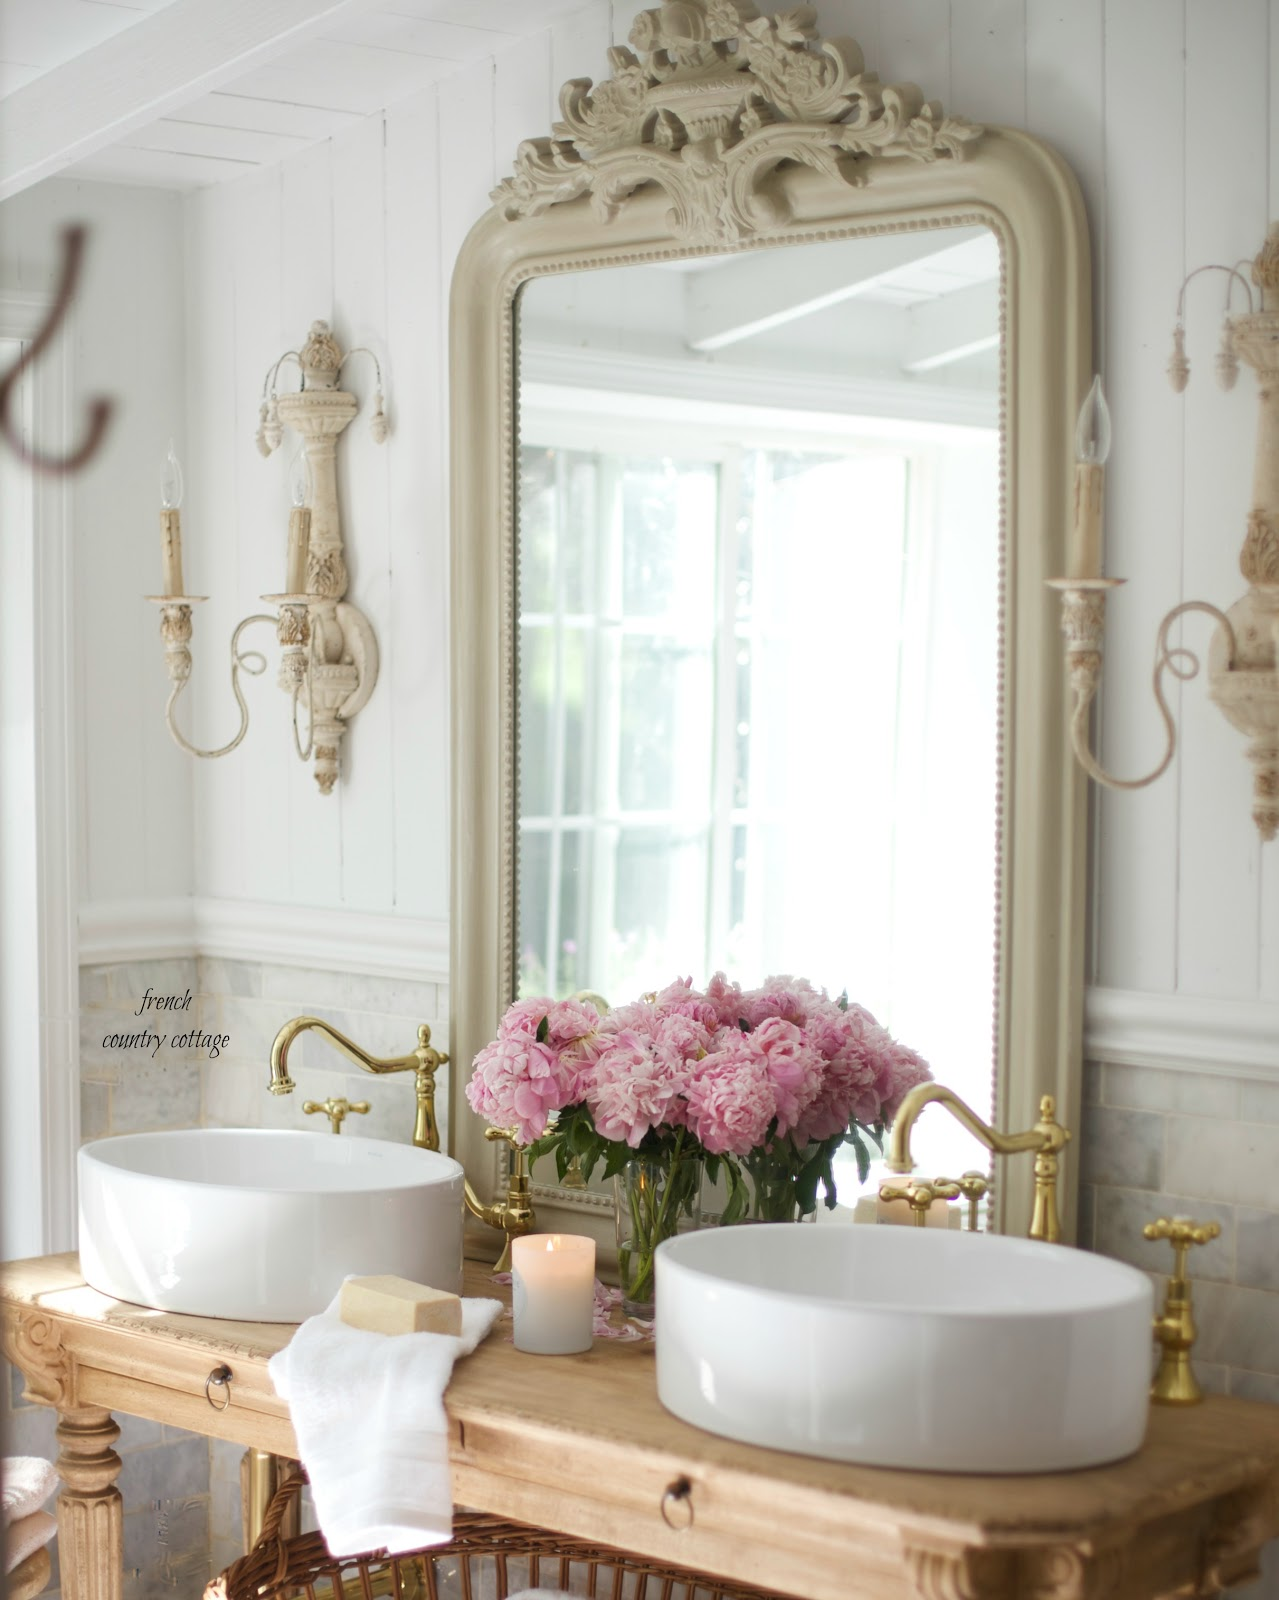 Marvelous marble and vessel sinks